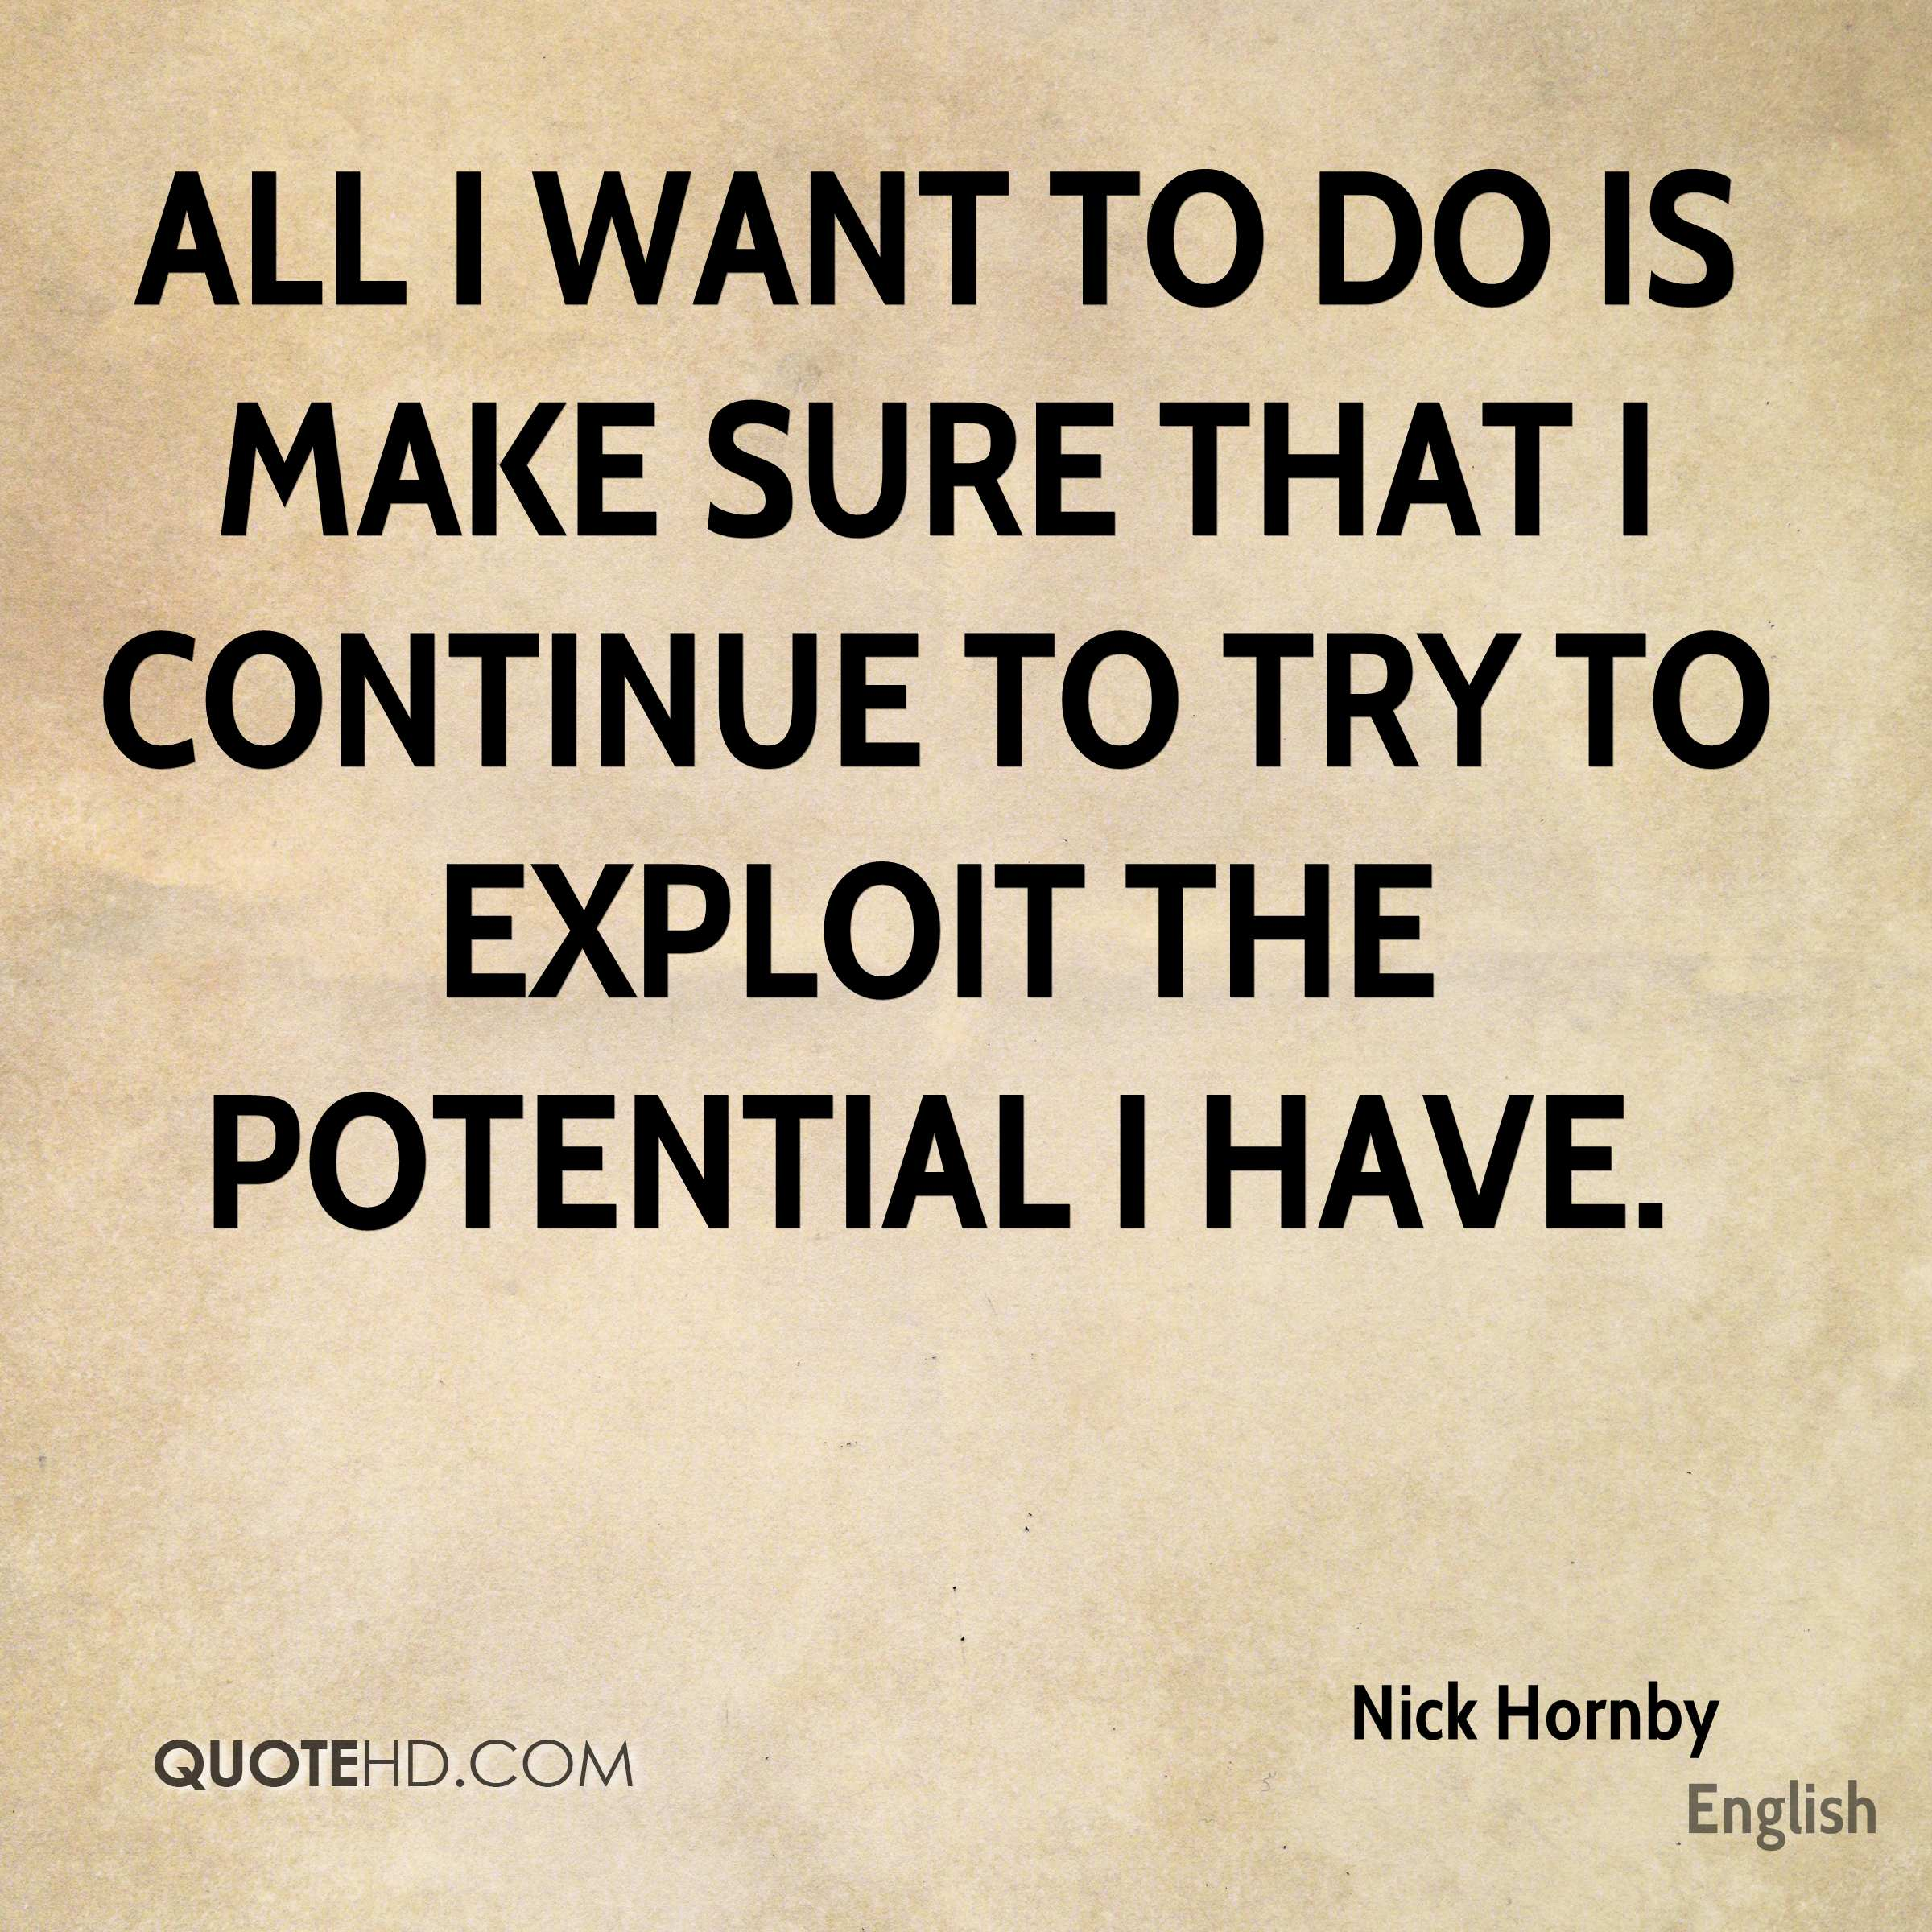 All I want to do is make sure that I continue to try to exploit the potential I have.